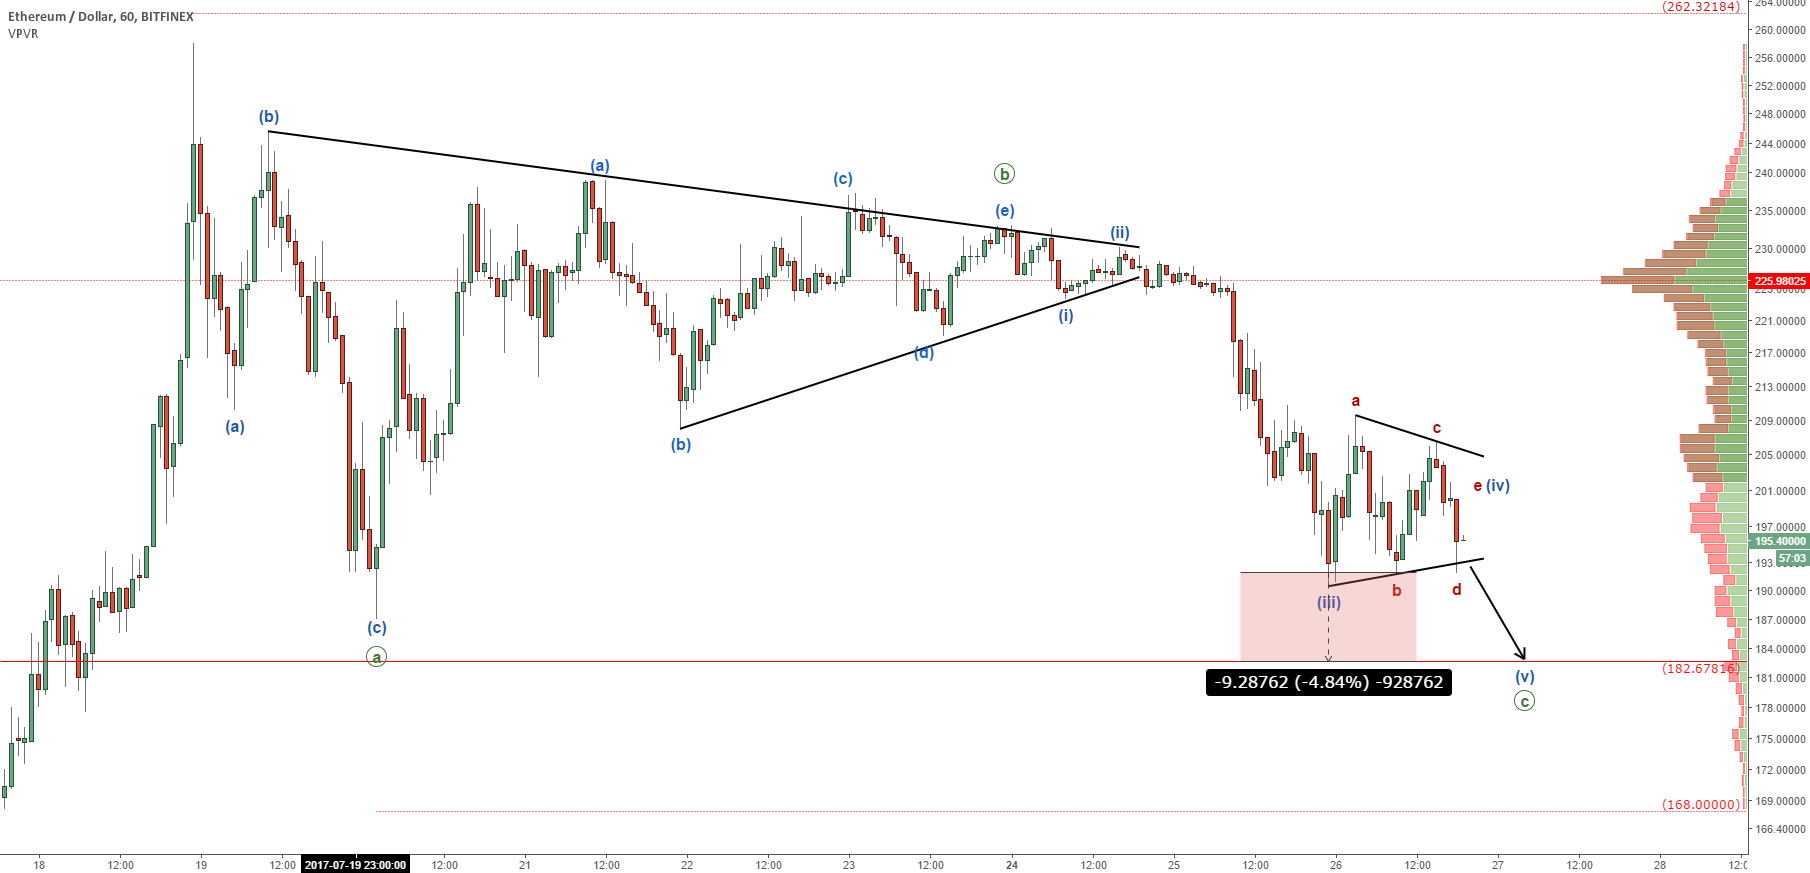 Ethereum (Intraday): One More Wave Down